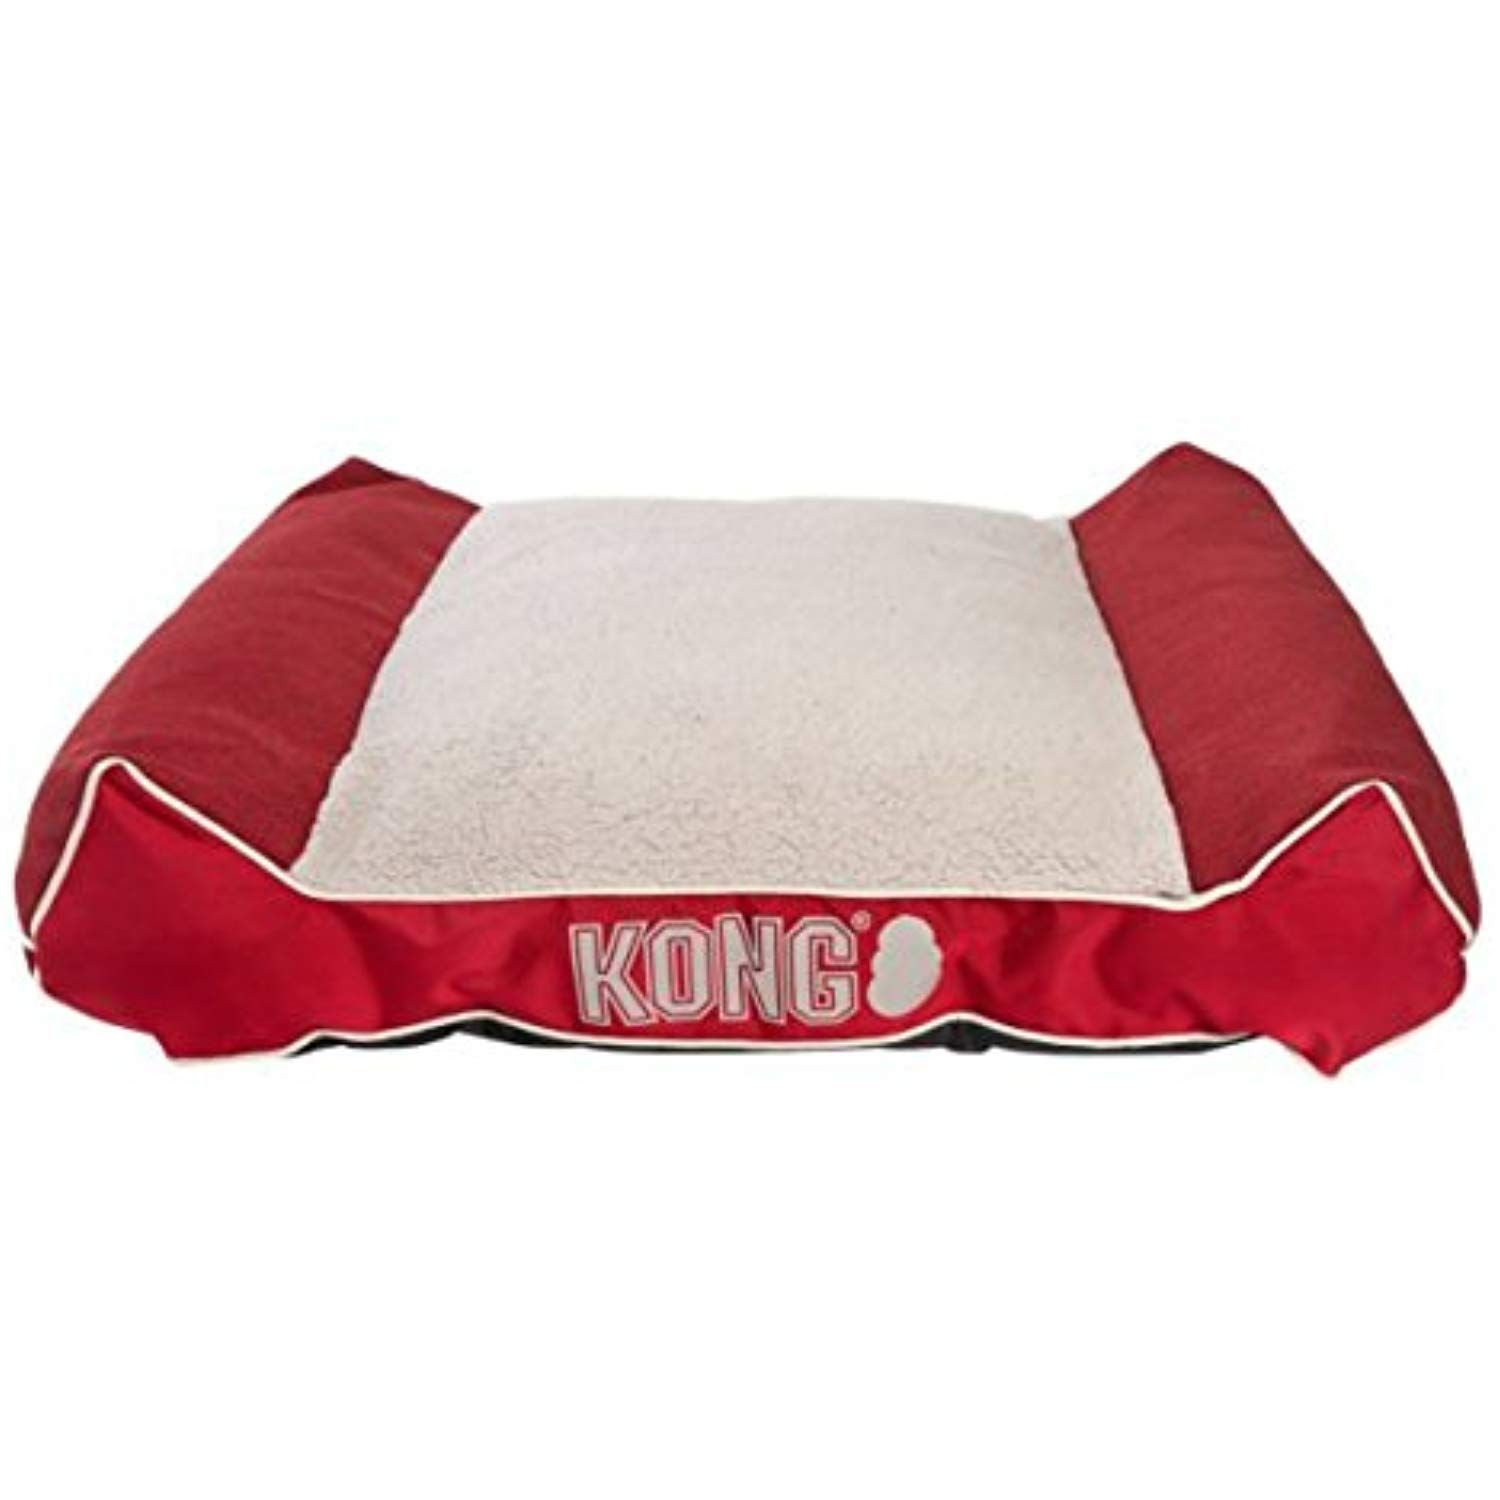 Kong Plush Lounger Dog Bed Red See This Great Product This Is An Affiliate Link Dog Bed Dog Pillow Bed Dog Bed Sizes